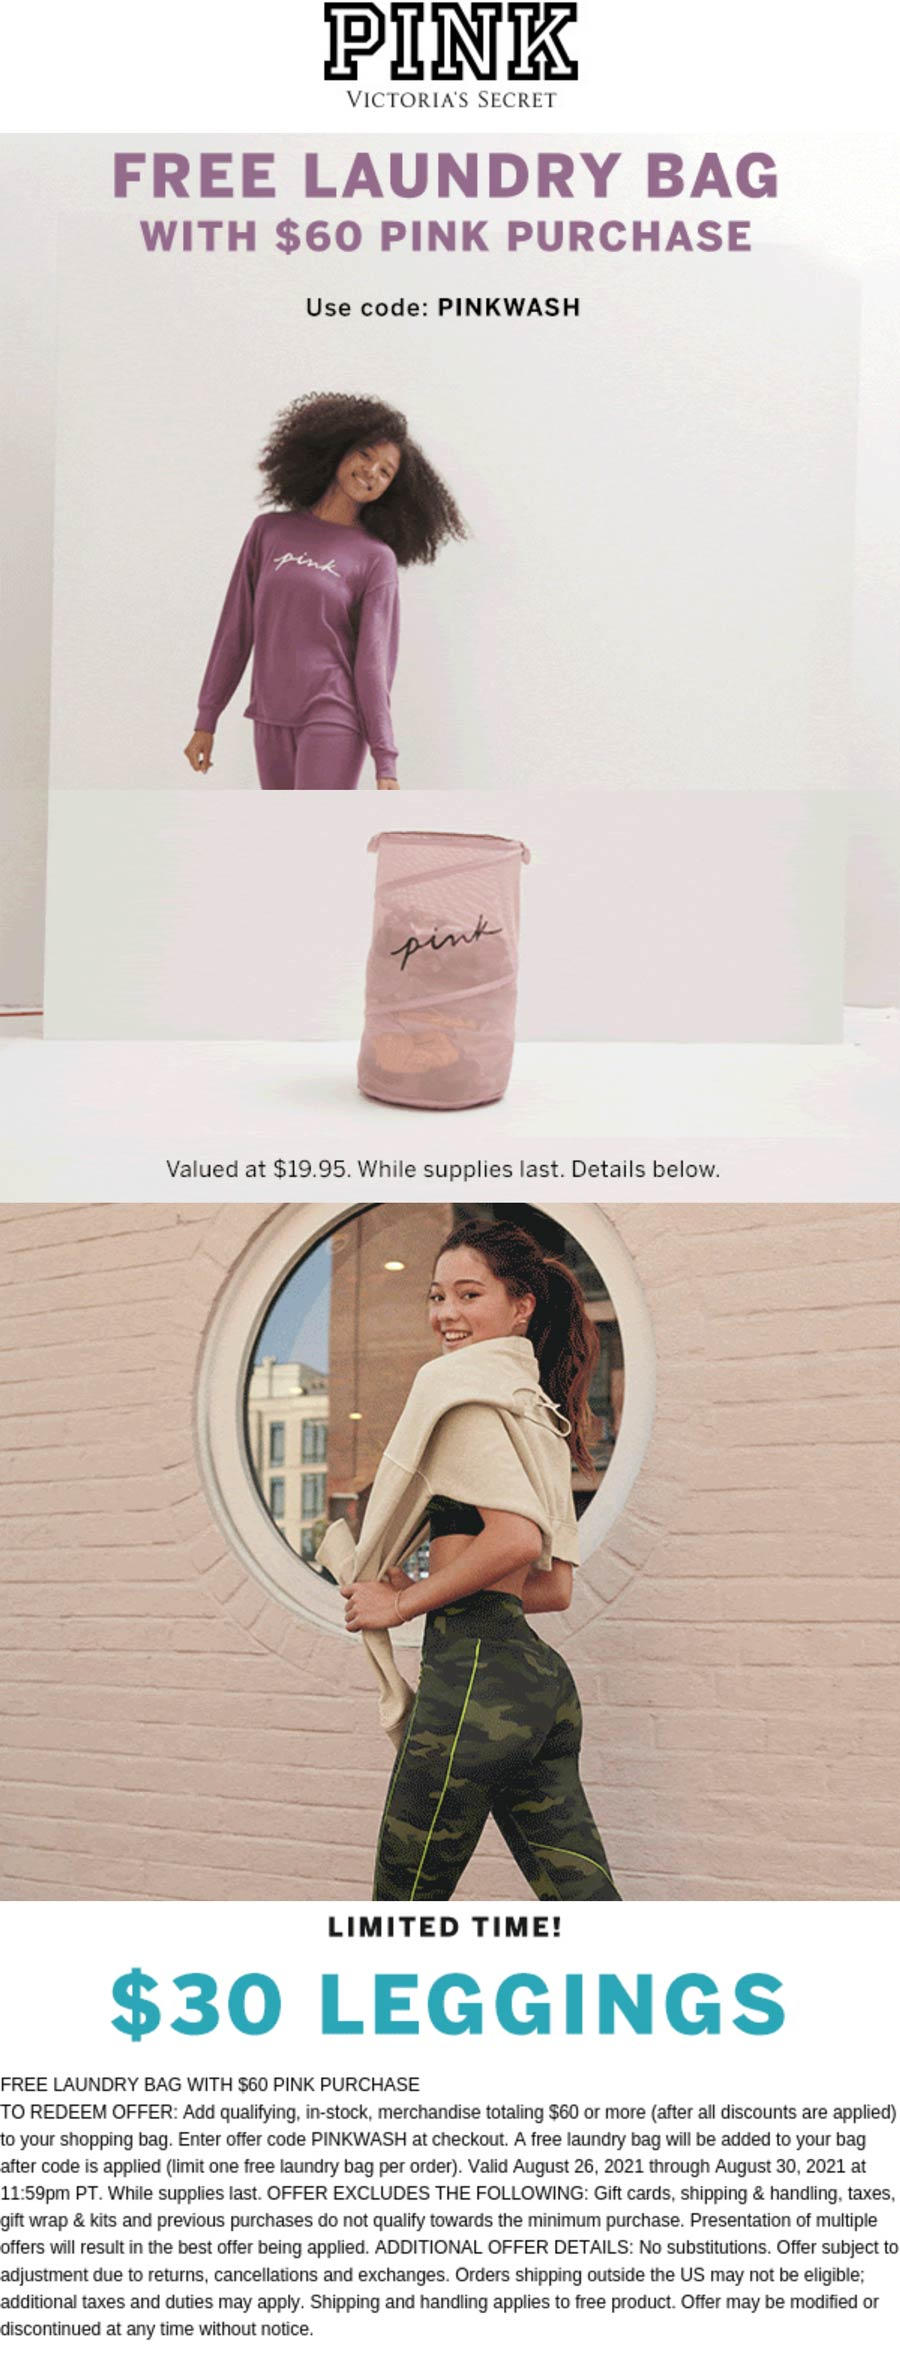 PINK stores Coupon  Free laundry bag with $60 spent at Victorias Secret PINK via promo code PINKWASH #pink